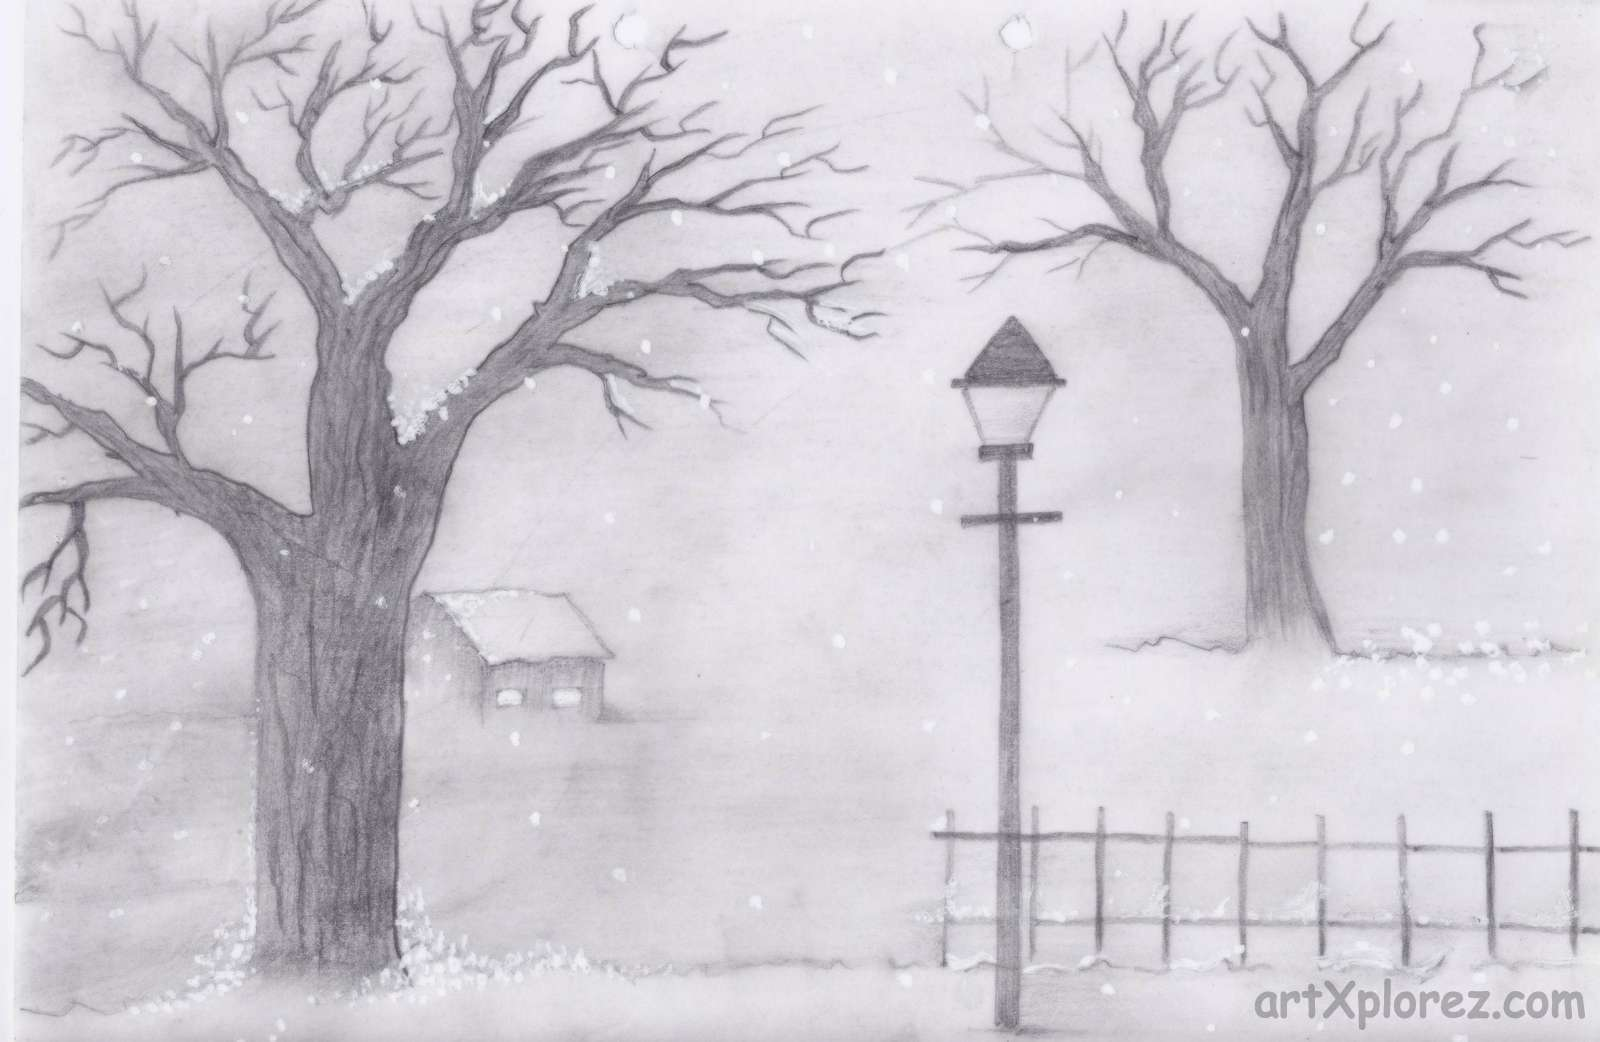 Drawn scenic shading Pencil weather chilled shading Shading